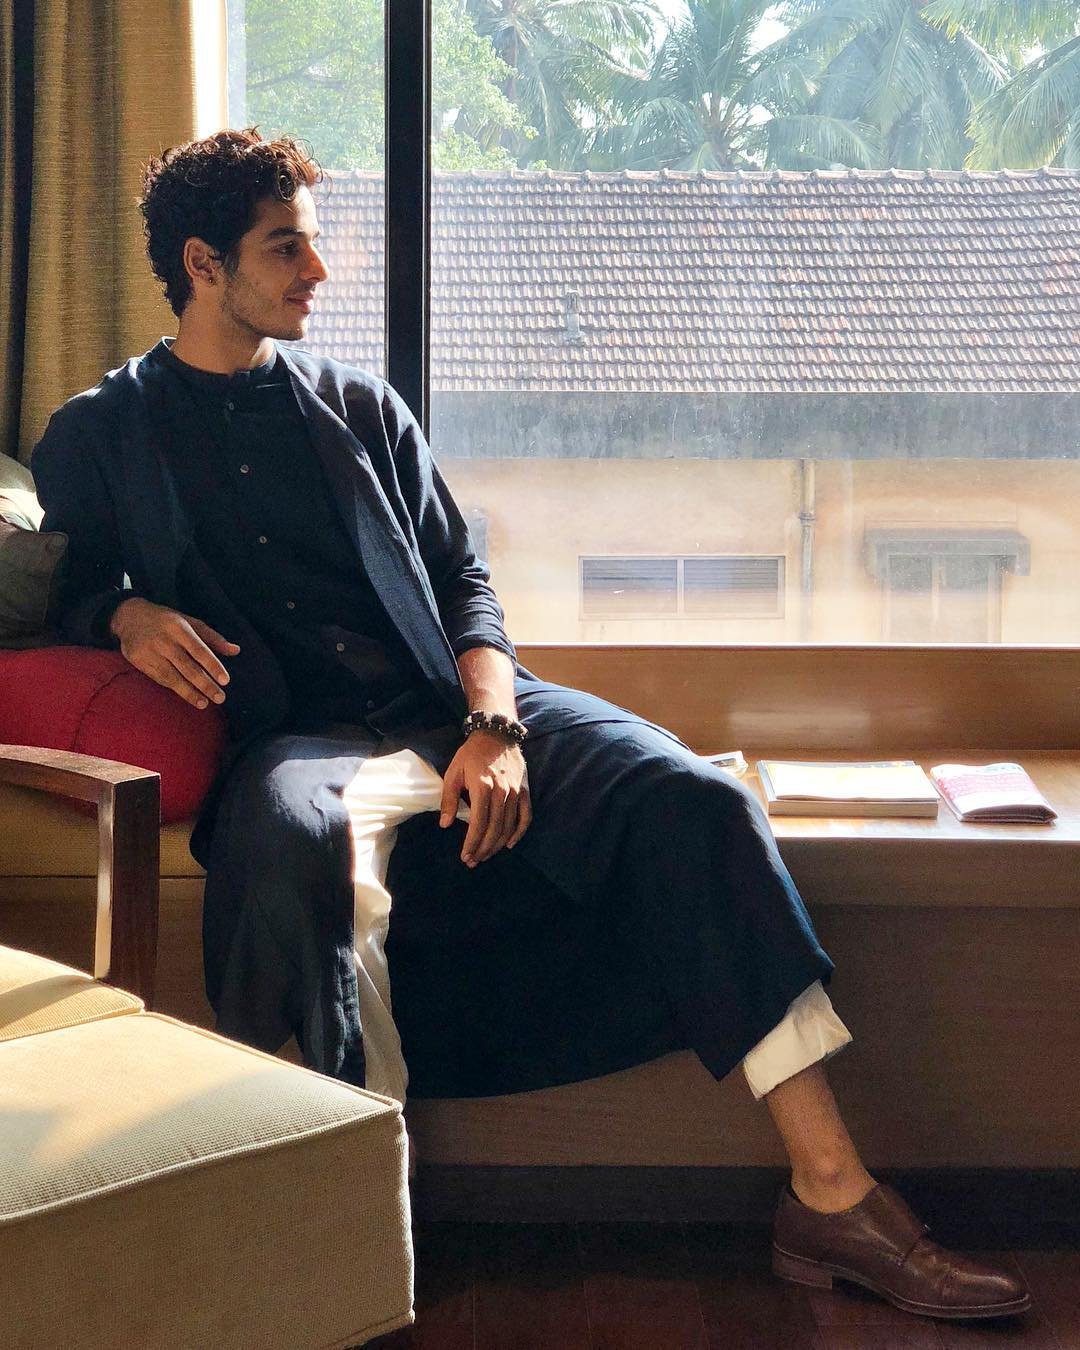 4 bollywood hero - ishaan khatter